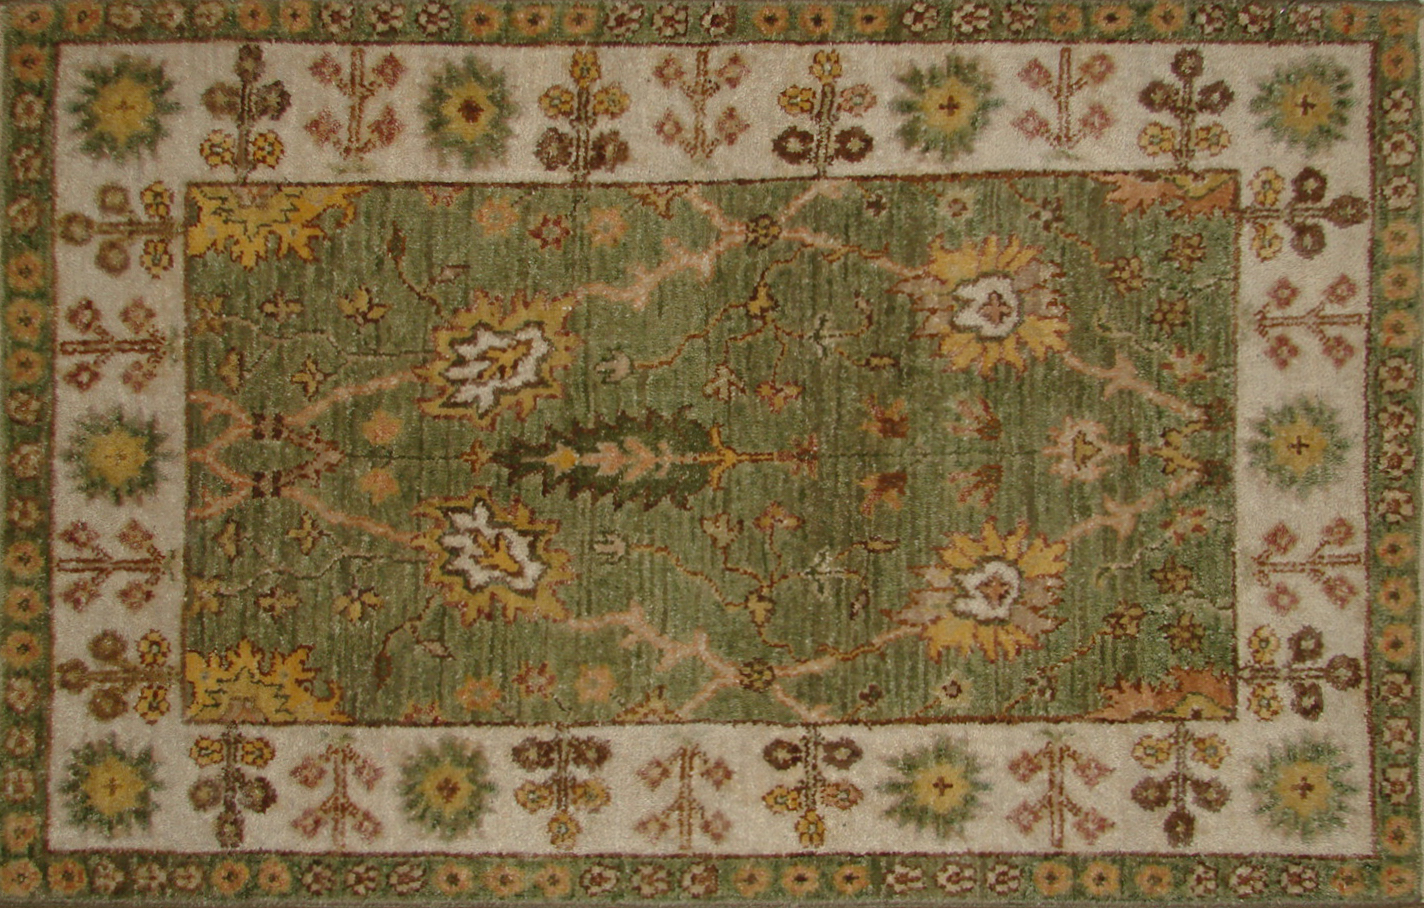 2X3 Traditional Hand Knotted Wool Area Rug - MR19871